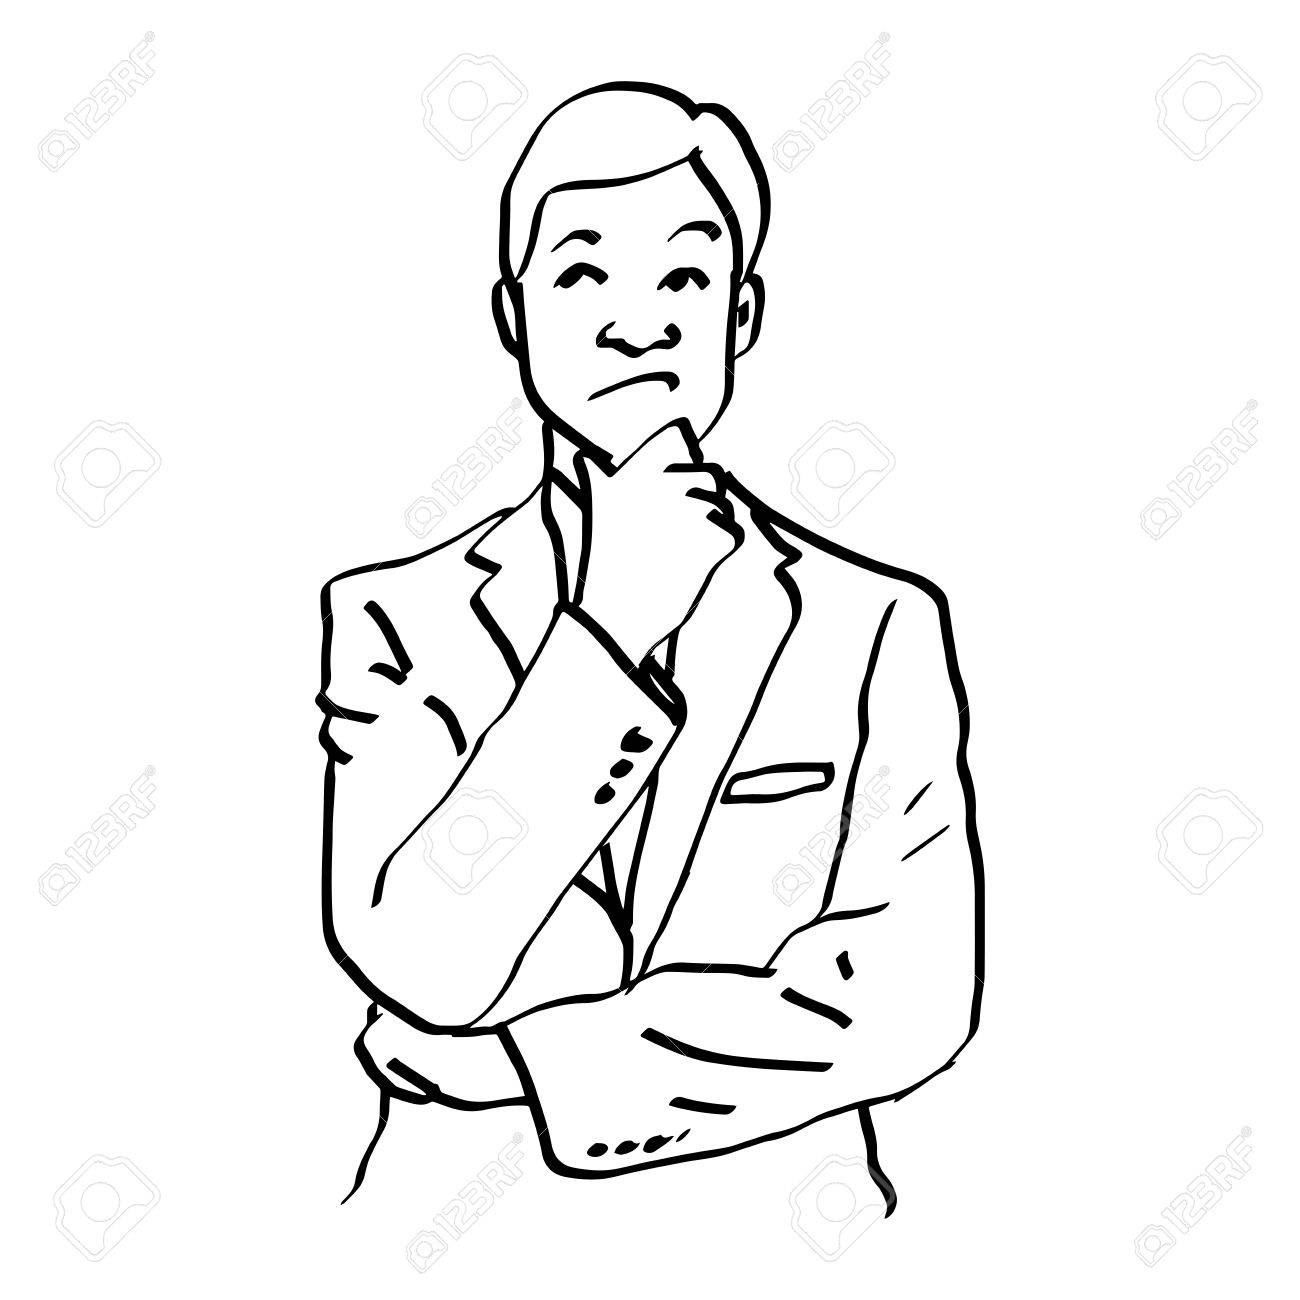 1300x1300 Illustration Vector Doodles Hand Drawn Man Thinking And Resting